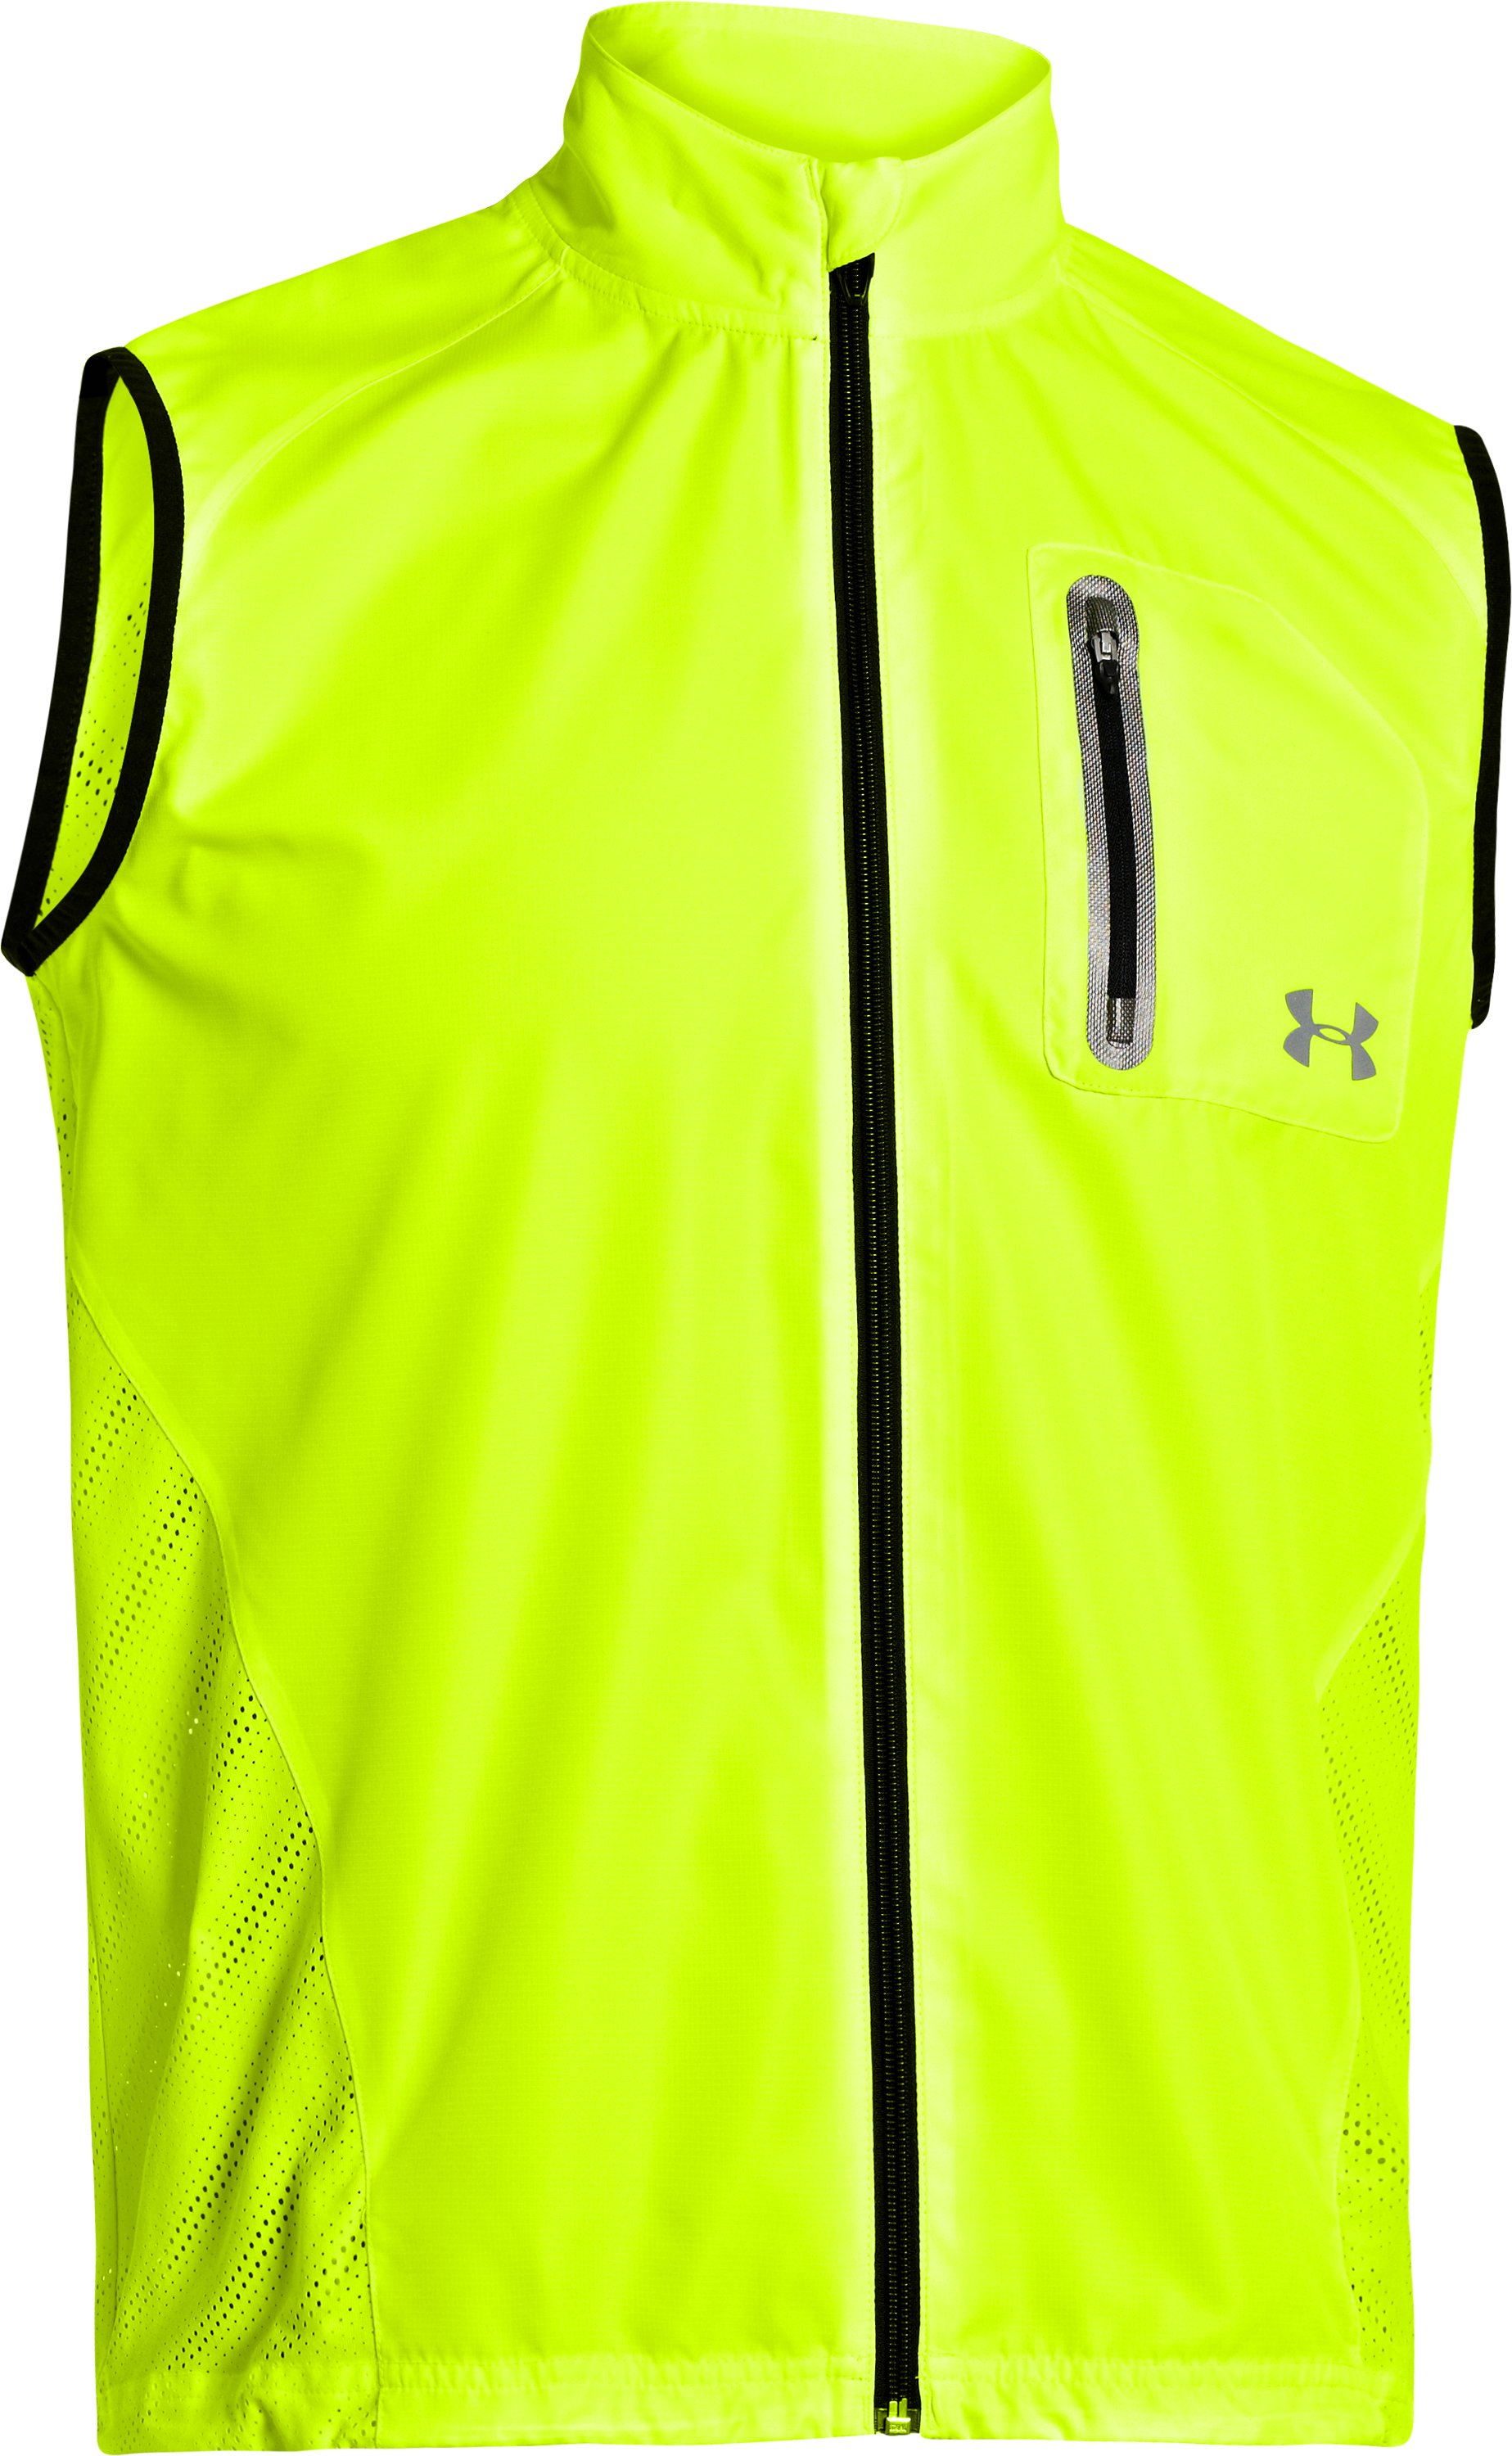 Men's ArmourVent™ Run Vest, High-Vis Yellow